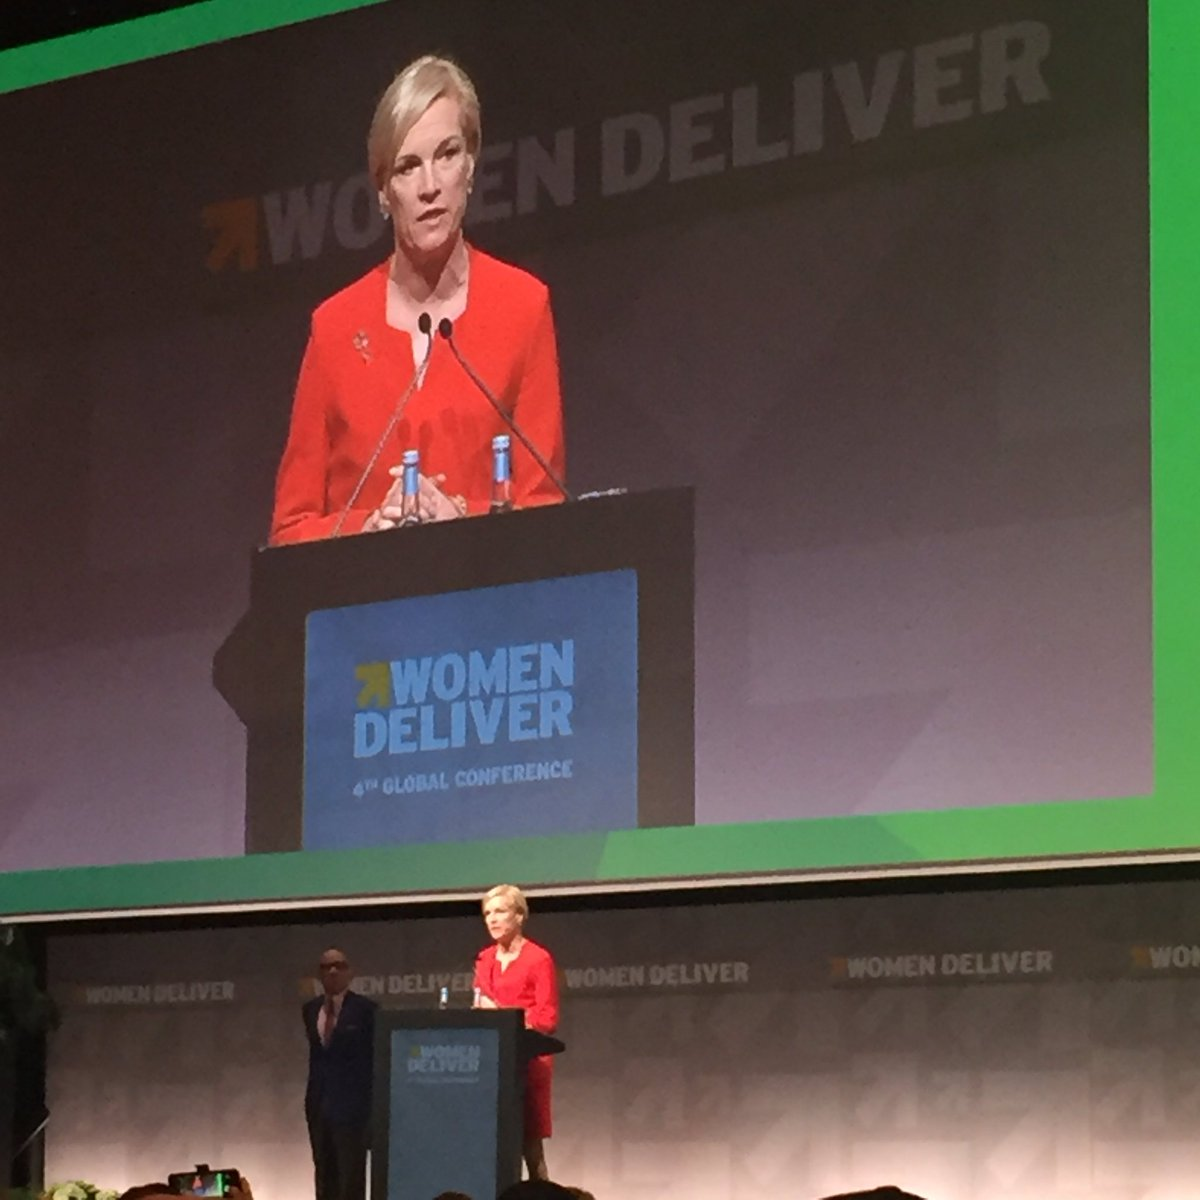 Congrats to the courageous & consistent @CecileRichards! A well deserved @WomenDeliver Award for Courage #WD2016 https://t.co/dsN22YTZ4D